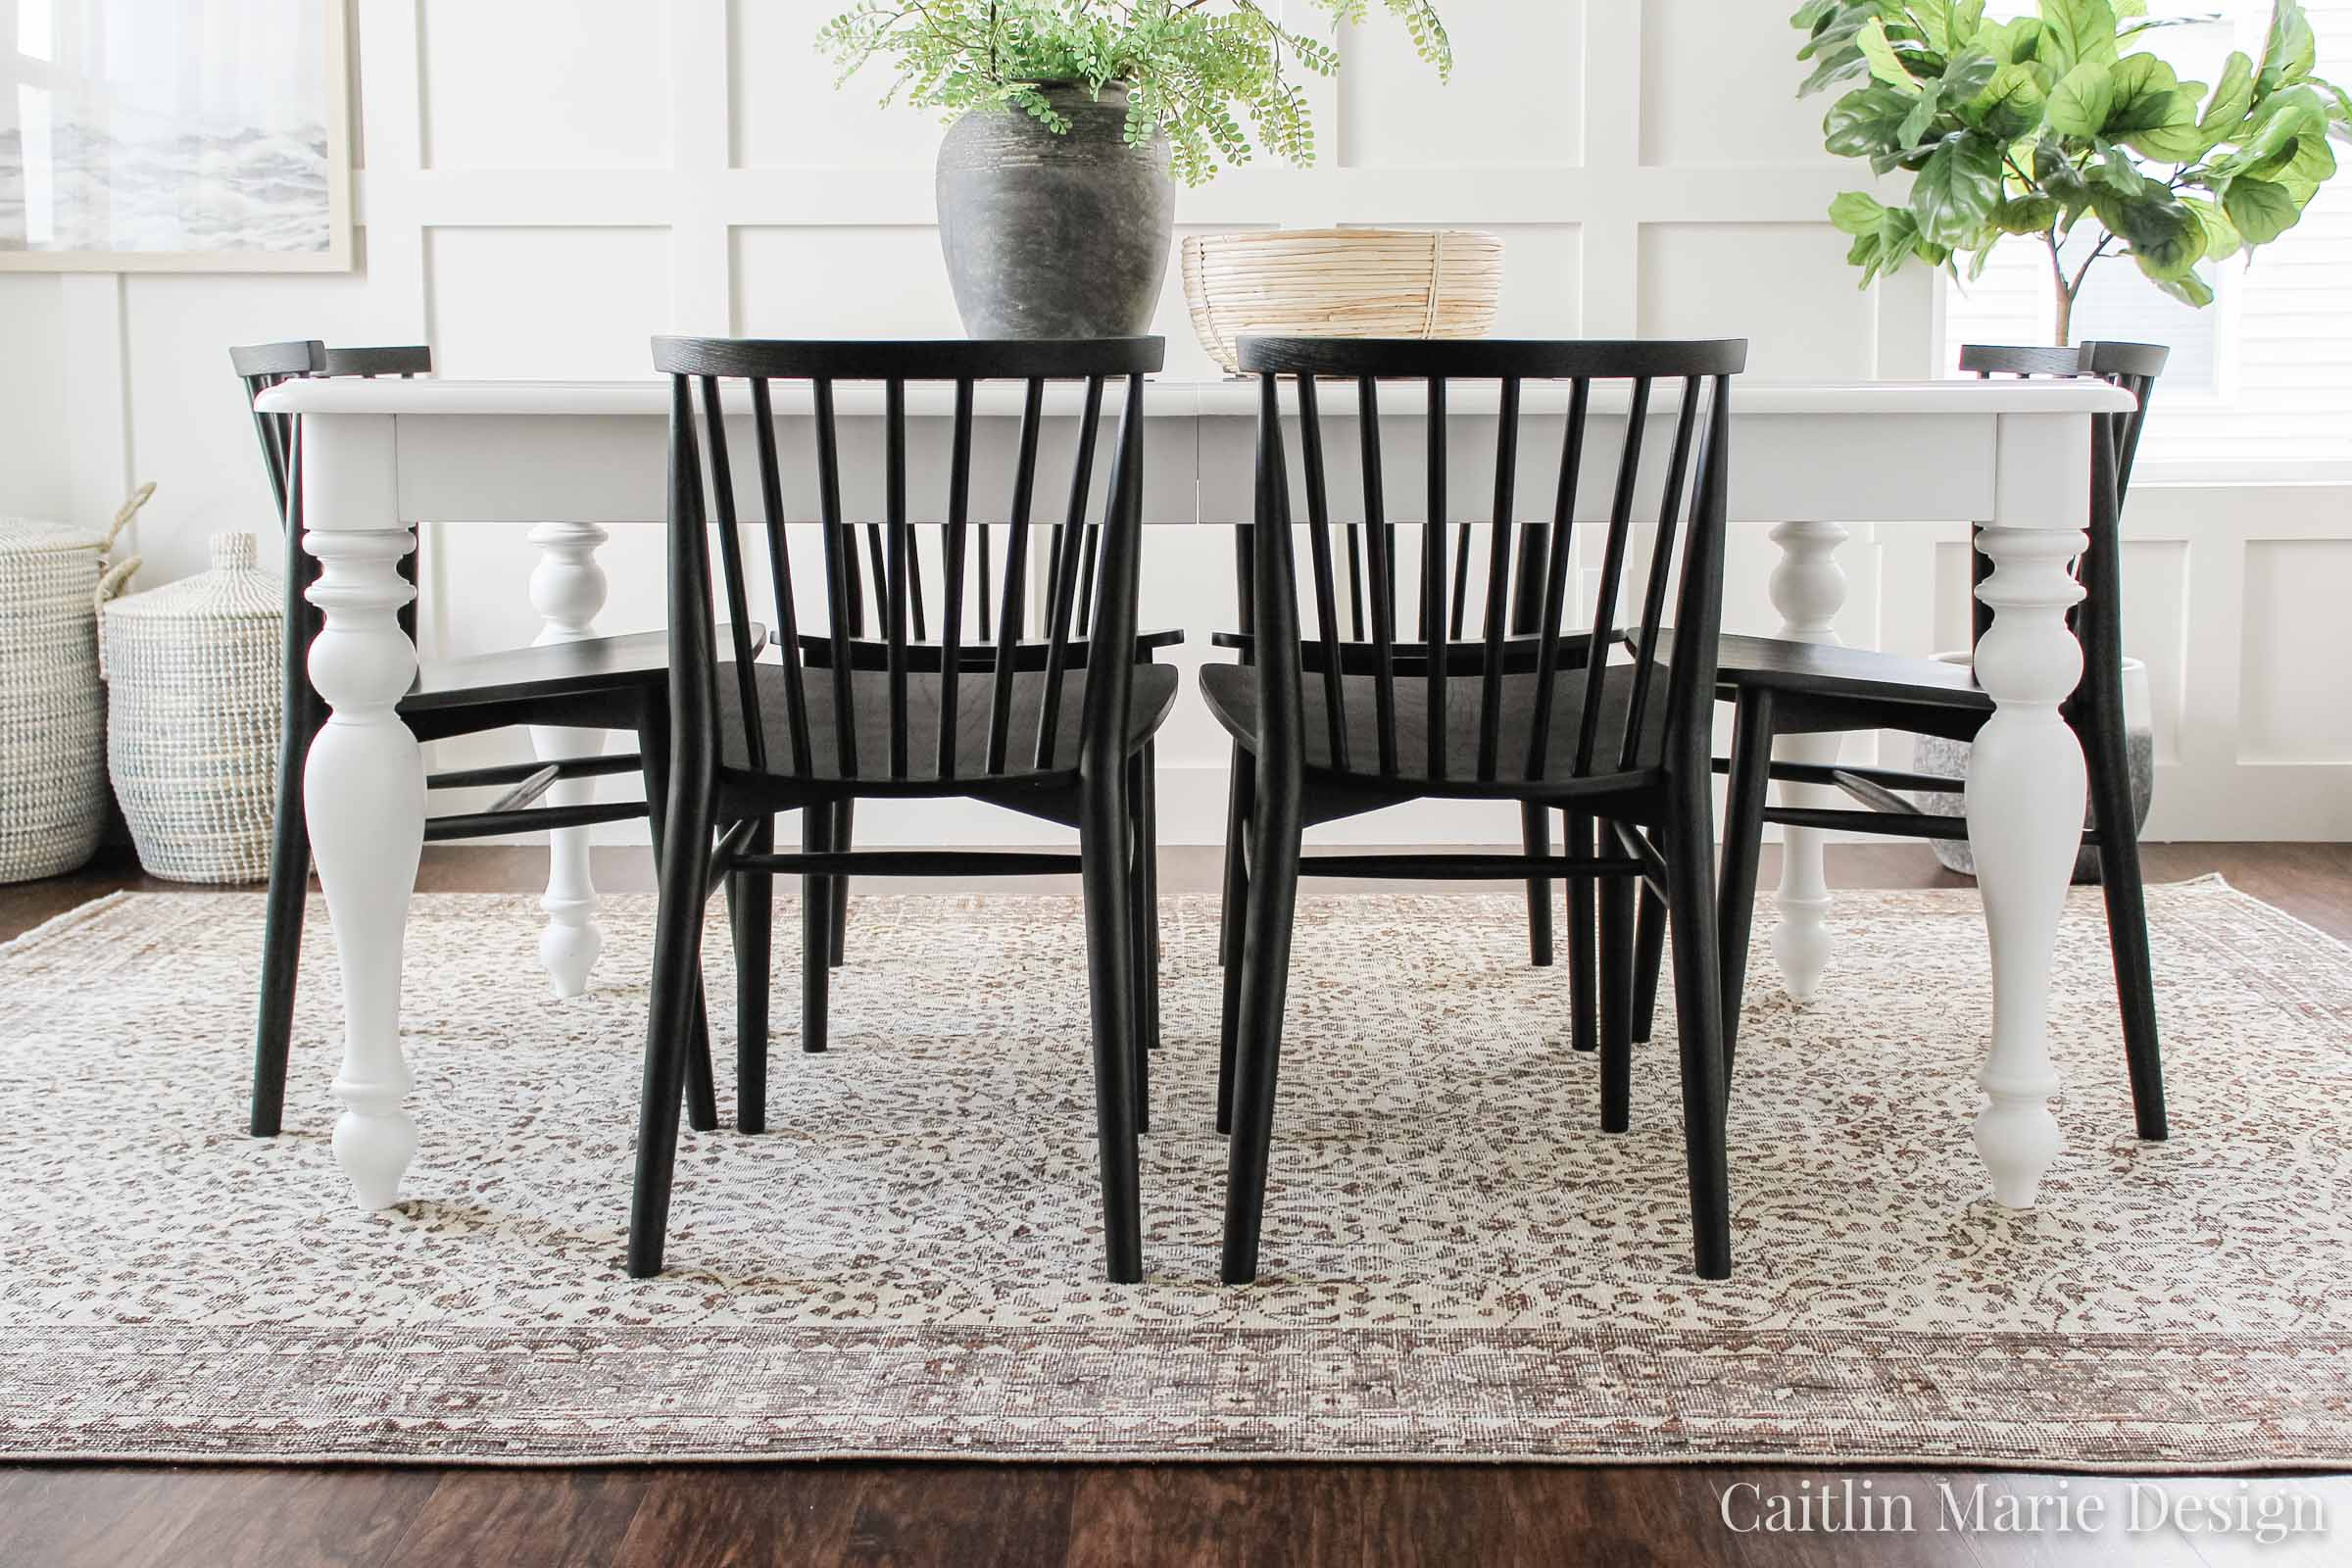 Modern Dining Chair Update with Article | coastal modern dining room, Windsor chair, brown vintage rug, landscape art, aged stone vase, board and batten accent wall